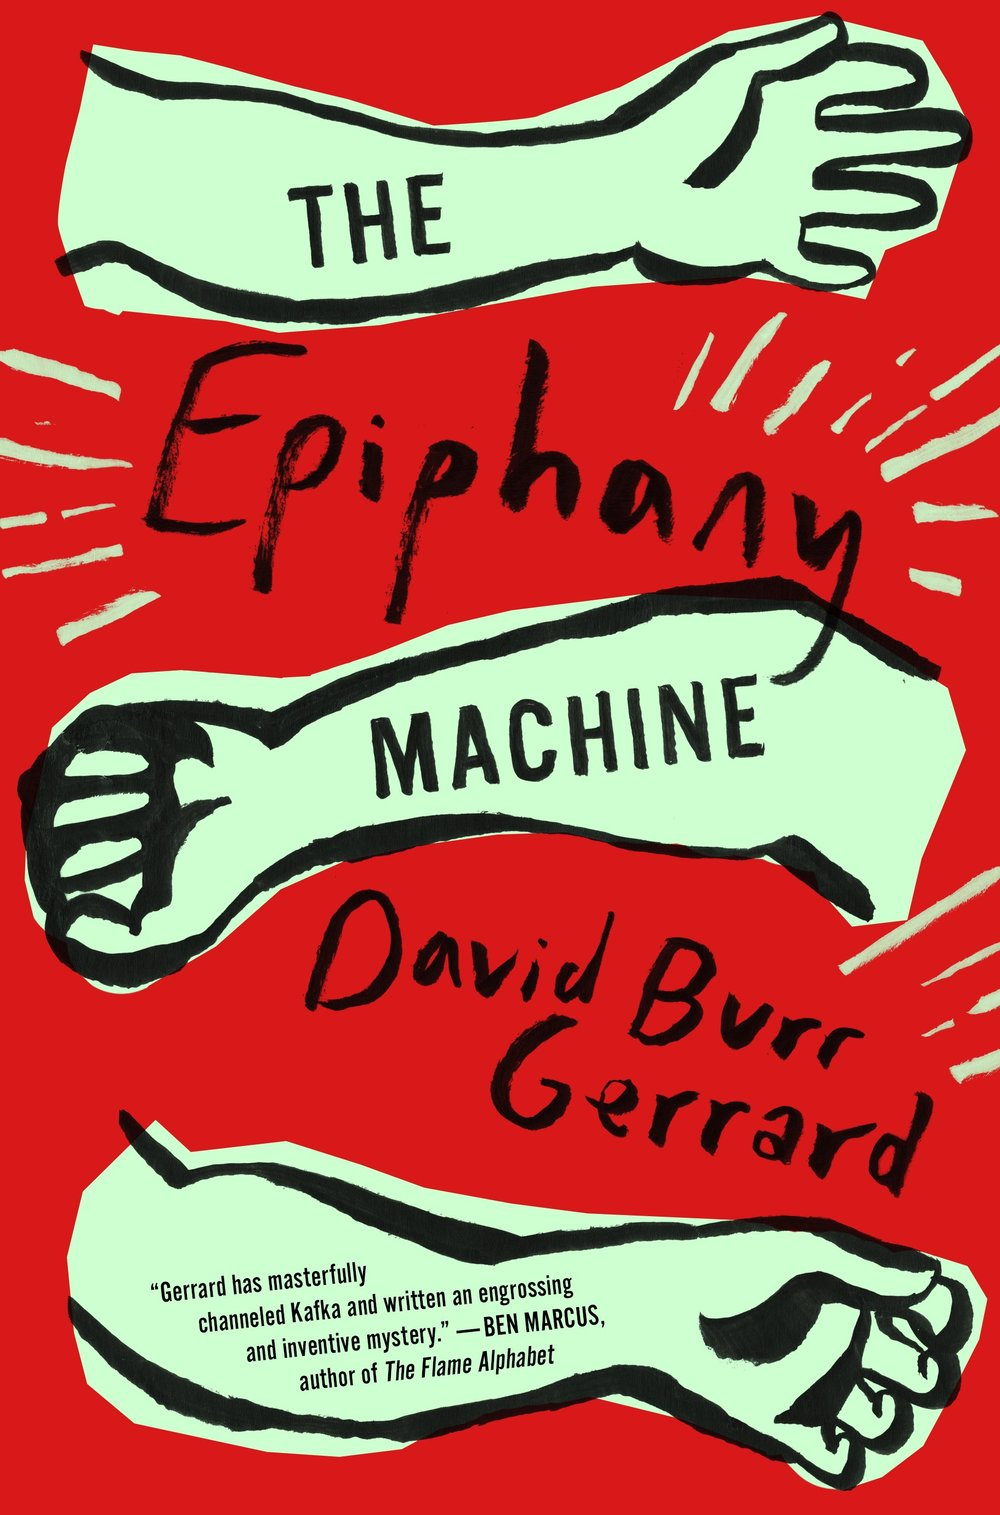 The Epiphany Machine David Burr Gerrard.jpg